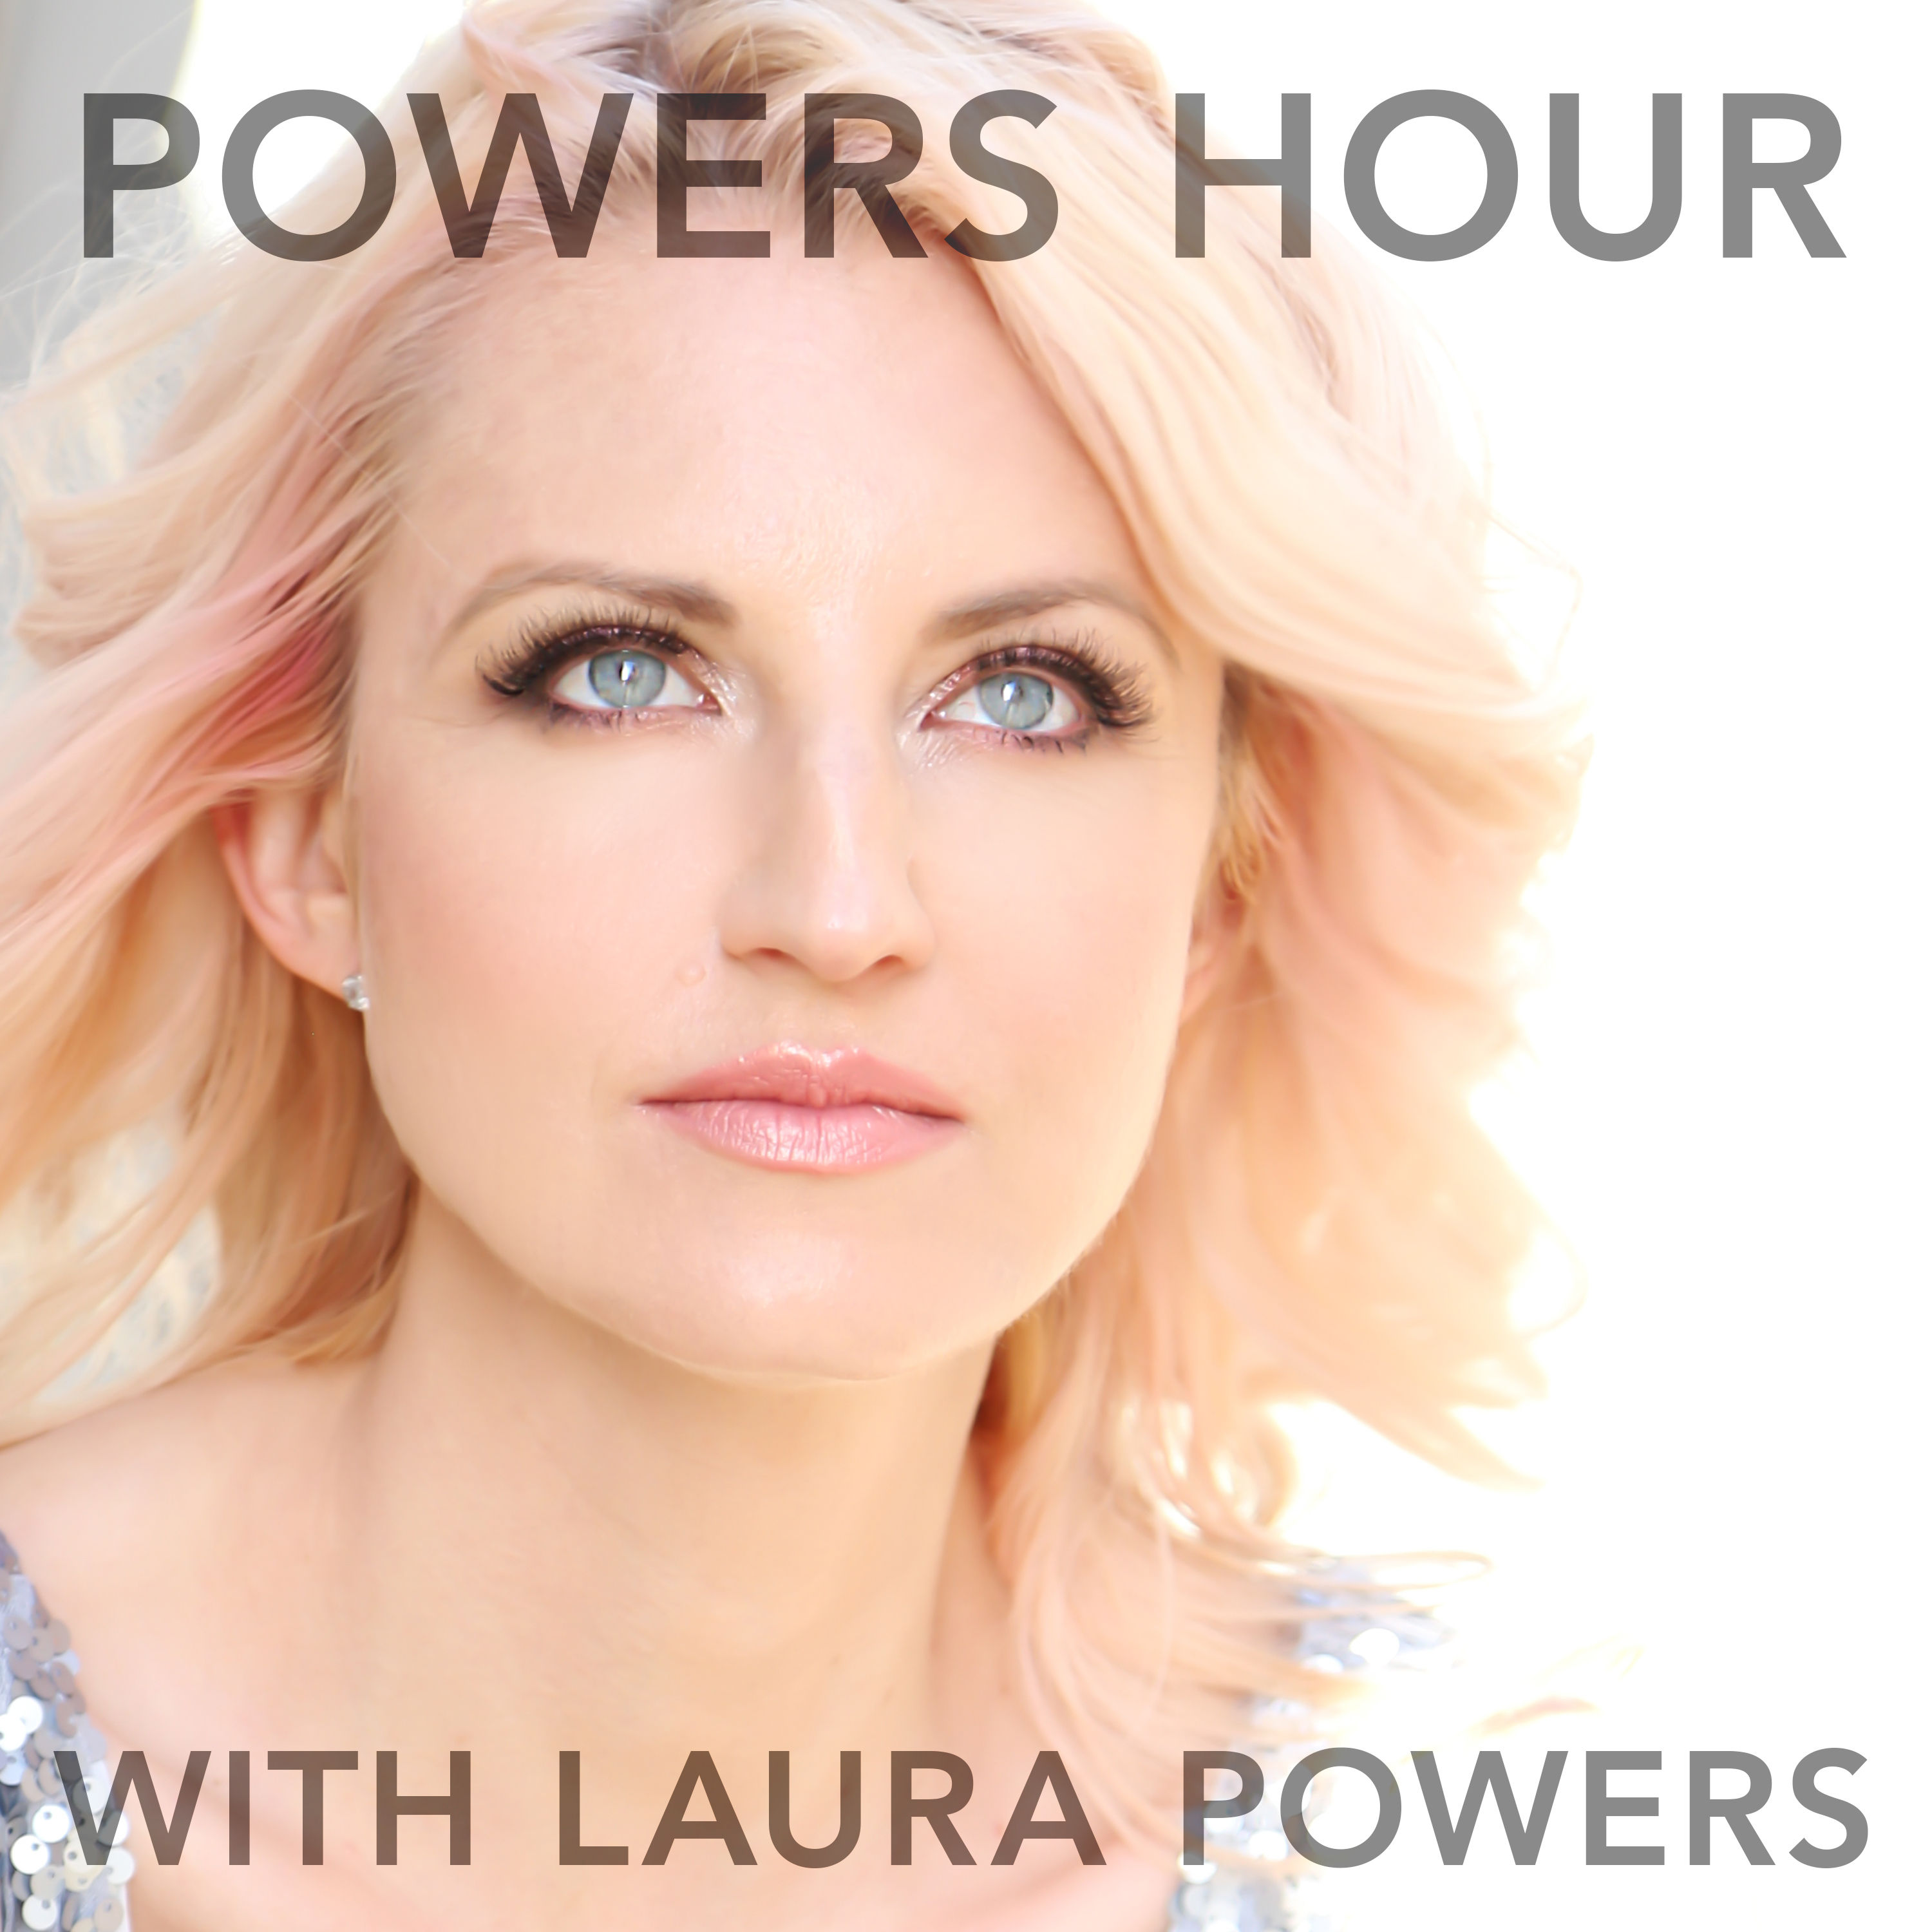 Powers Hour